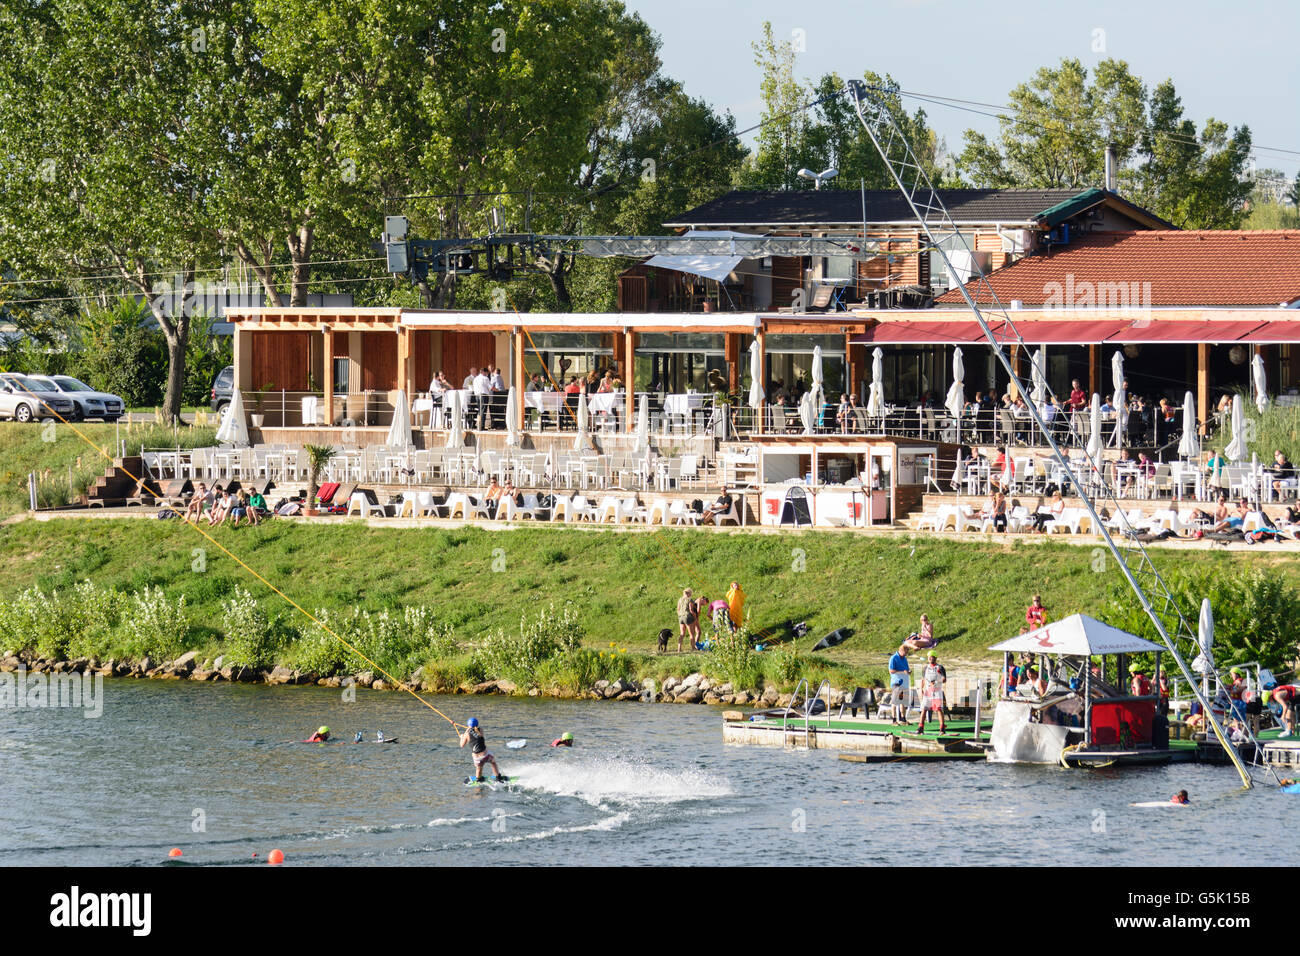 Wakeboarding with a water ski lift in the New Danube, restaurant, Wien, Vienna, Austria, Wien, 22. - Stock Image